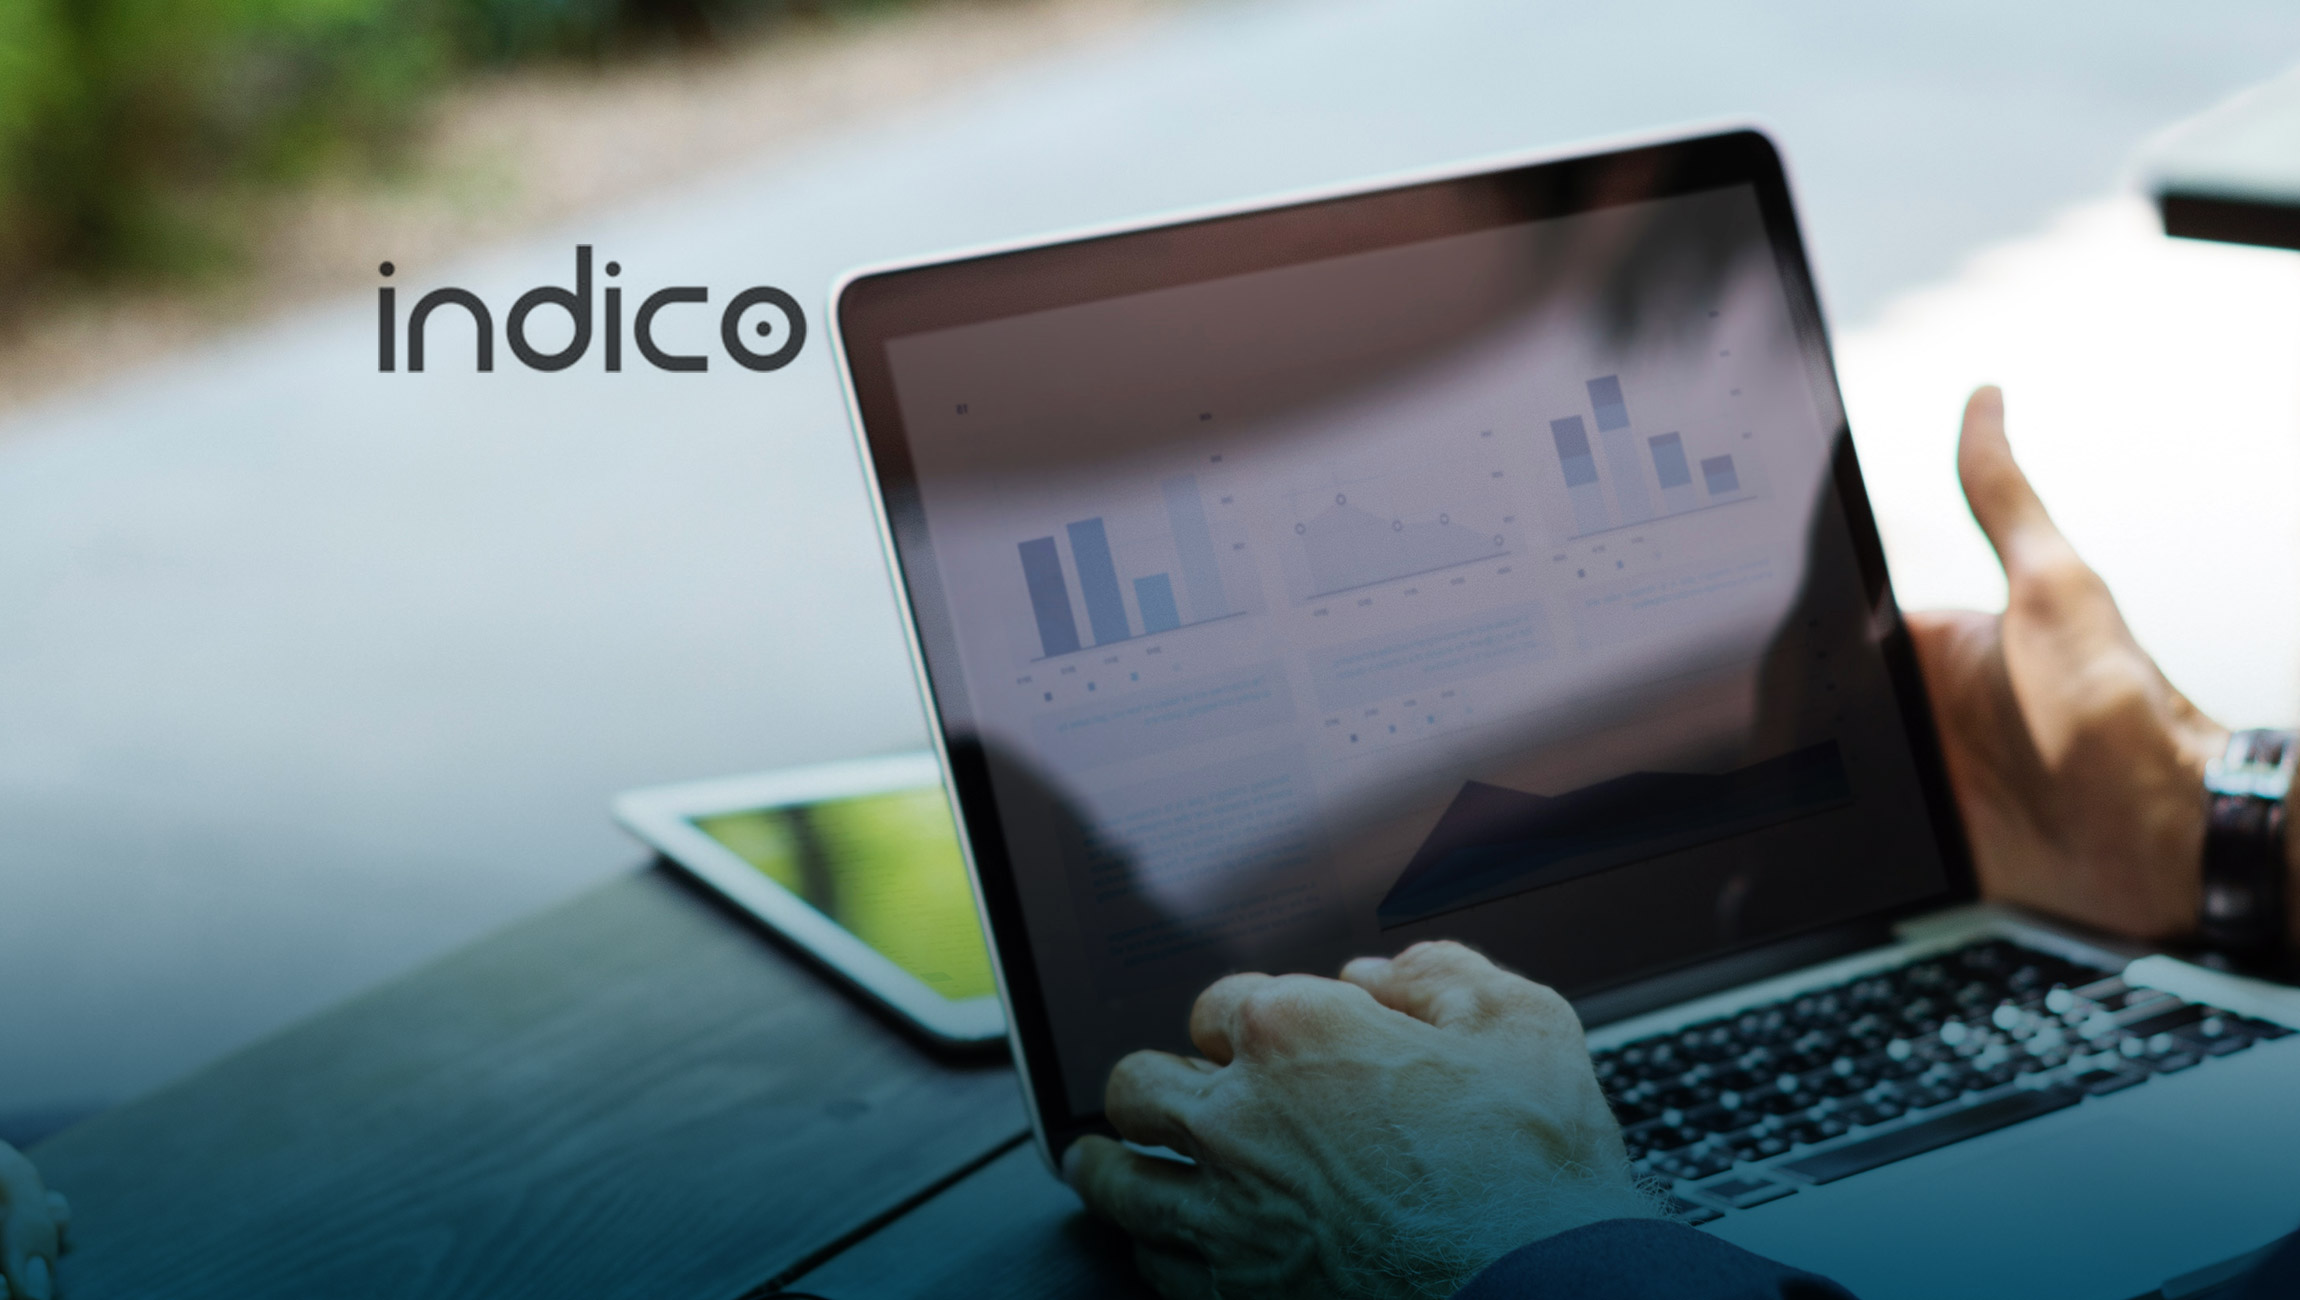 Latest Release of the Indico IPA Platform Delivers Unmatched Scalability & Performance for Analysis of Unstructured Content